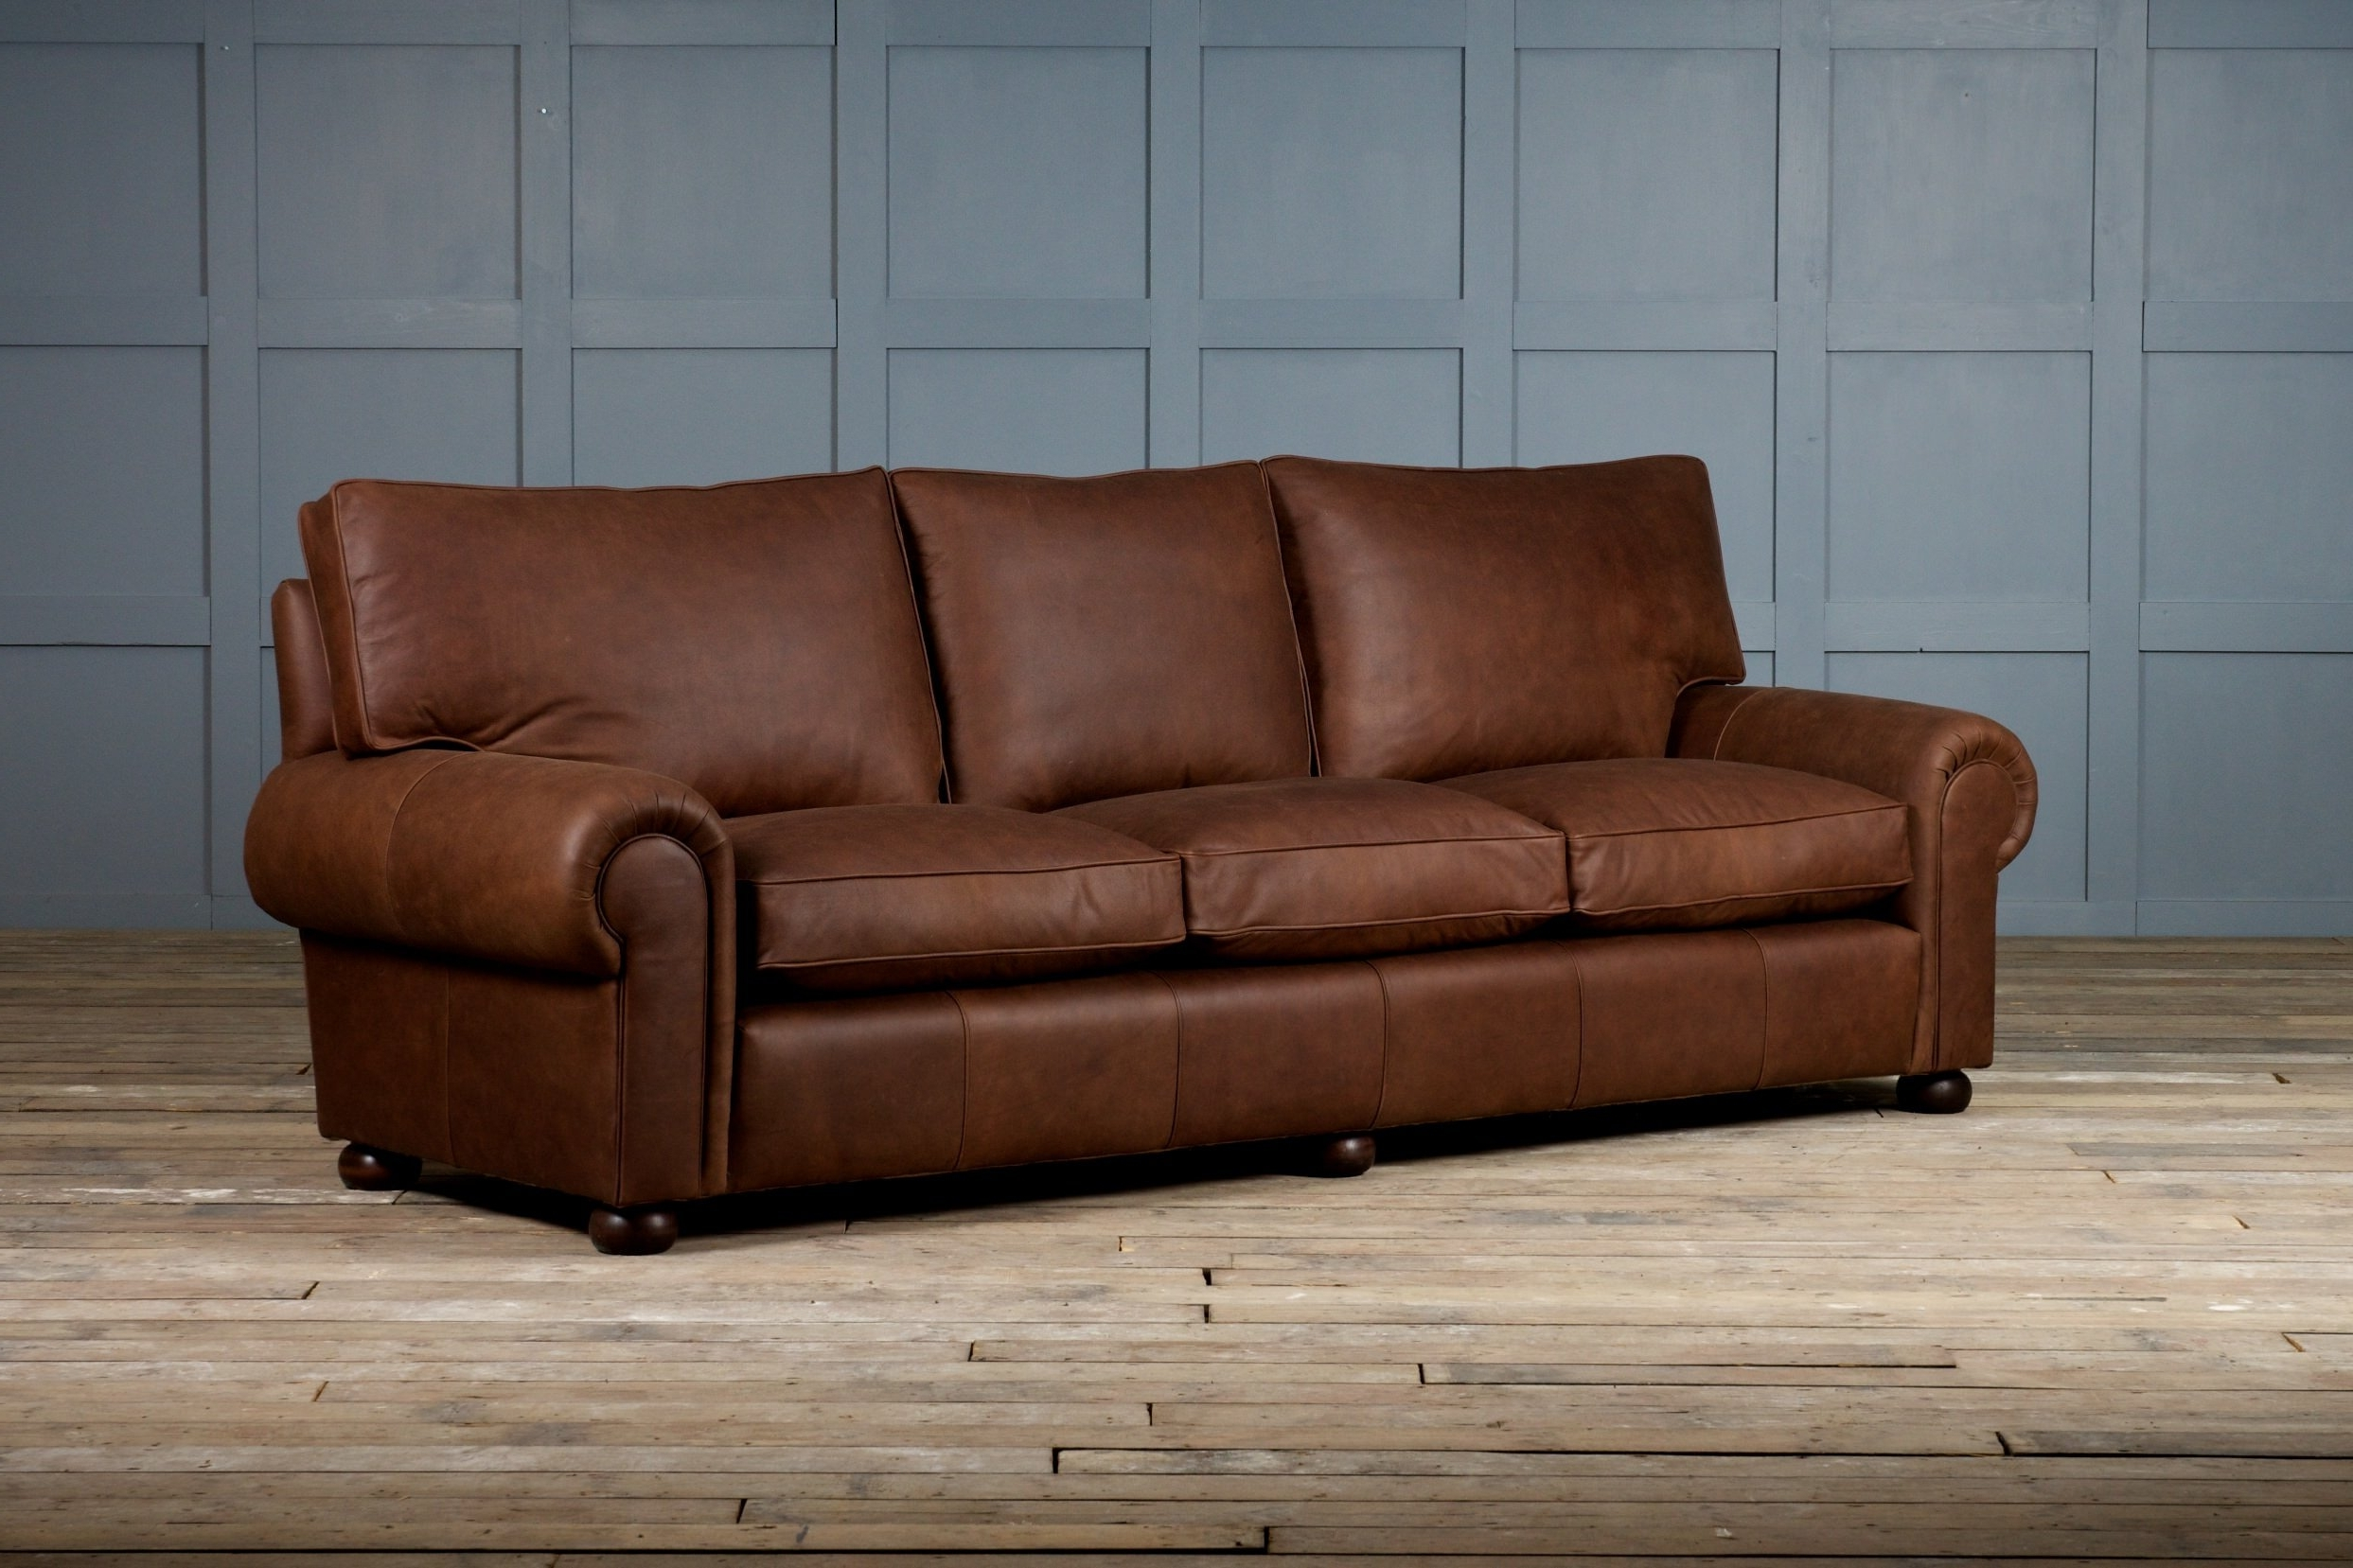 Most Recent Full Grain Leather Sofas With Regard To Light Brown Full Grain Leather Corner Sofa Decor With Cushions As (View 11 of 20)